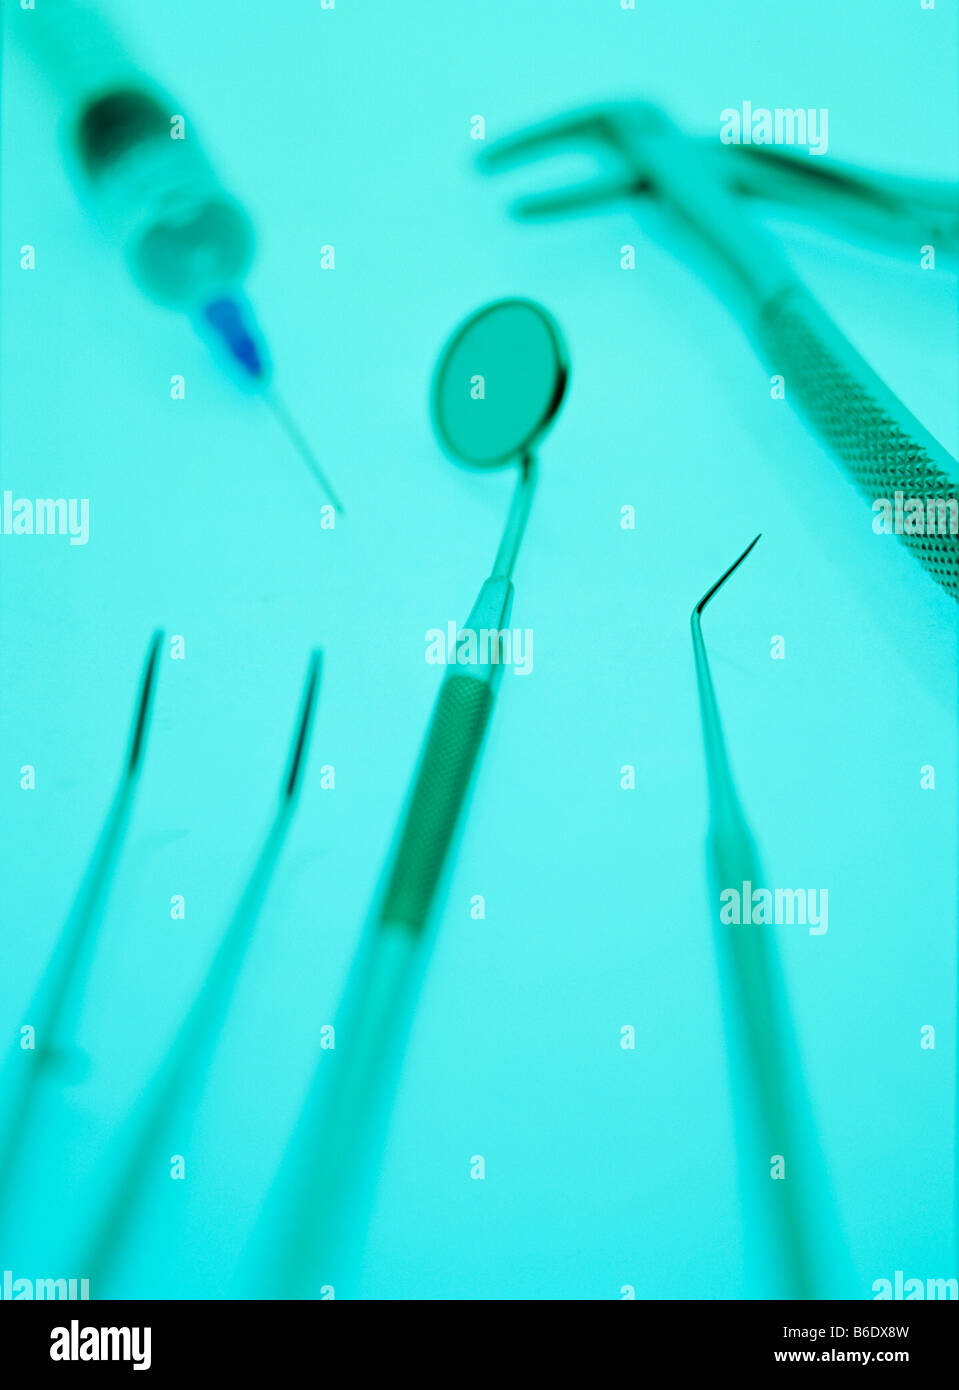 Dental equipment. At centre is an angled mirror for viewing the teeth. A pair of tweezers is at lower left. - Stock Image